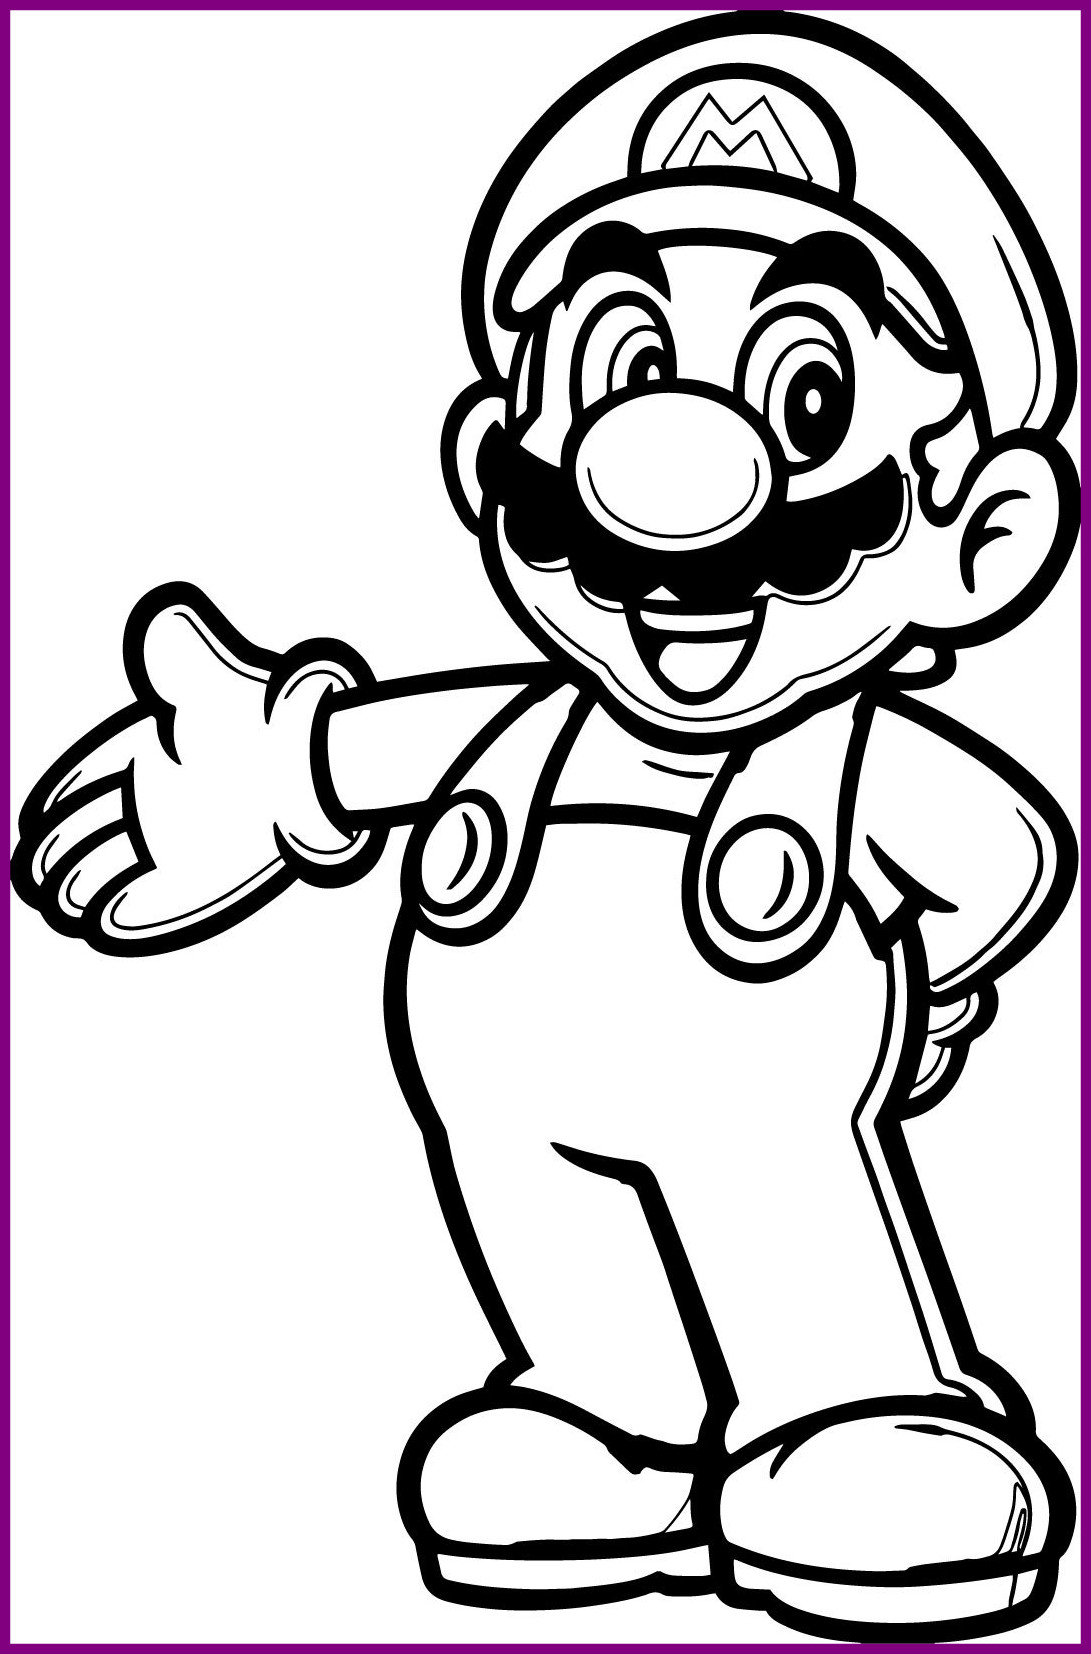 Cat Mario Coloring Pages At Getcolorings